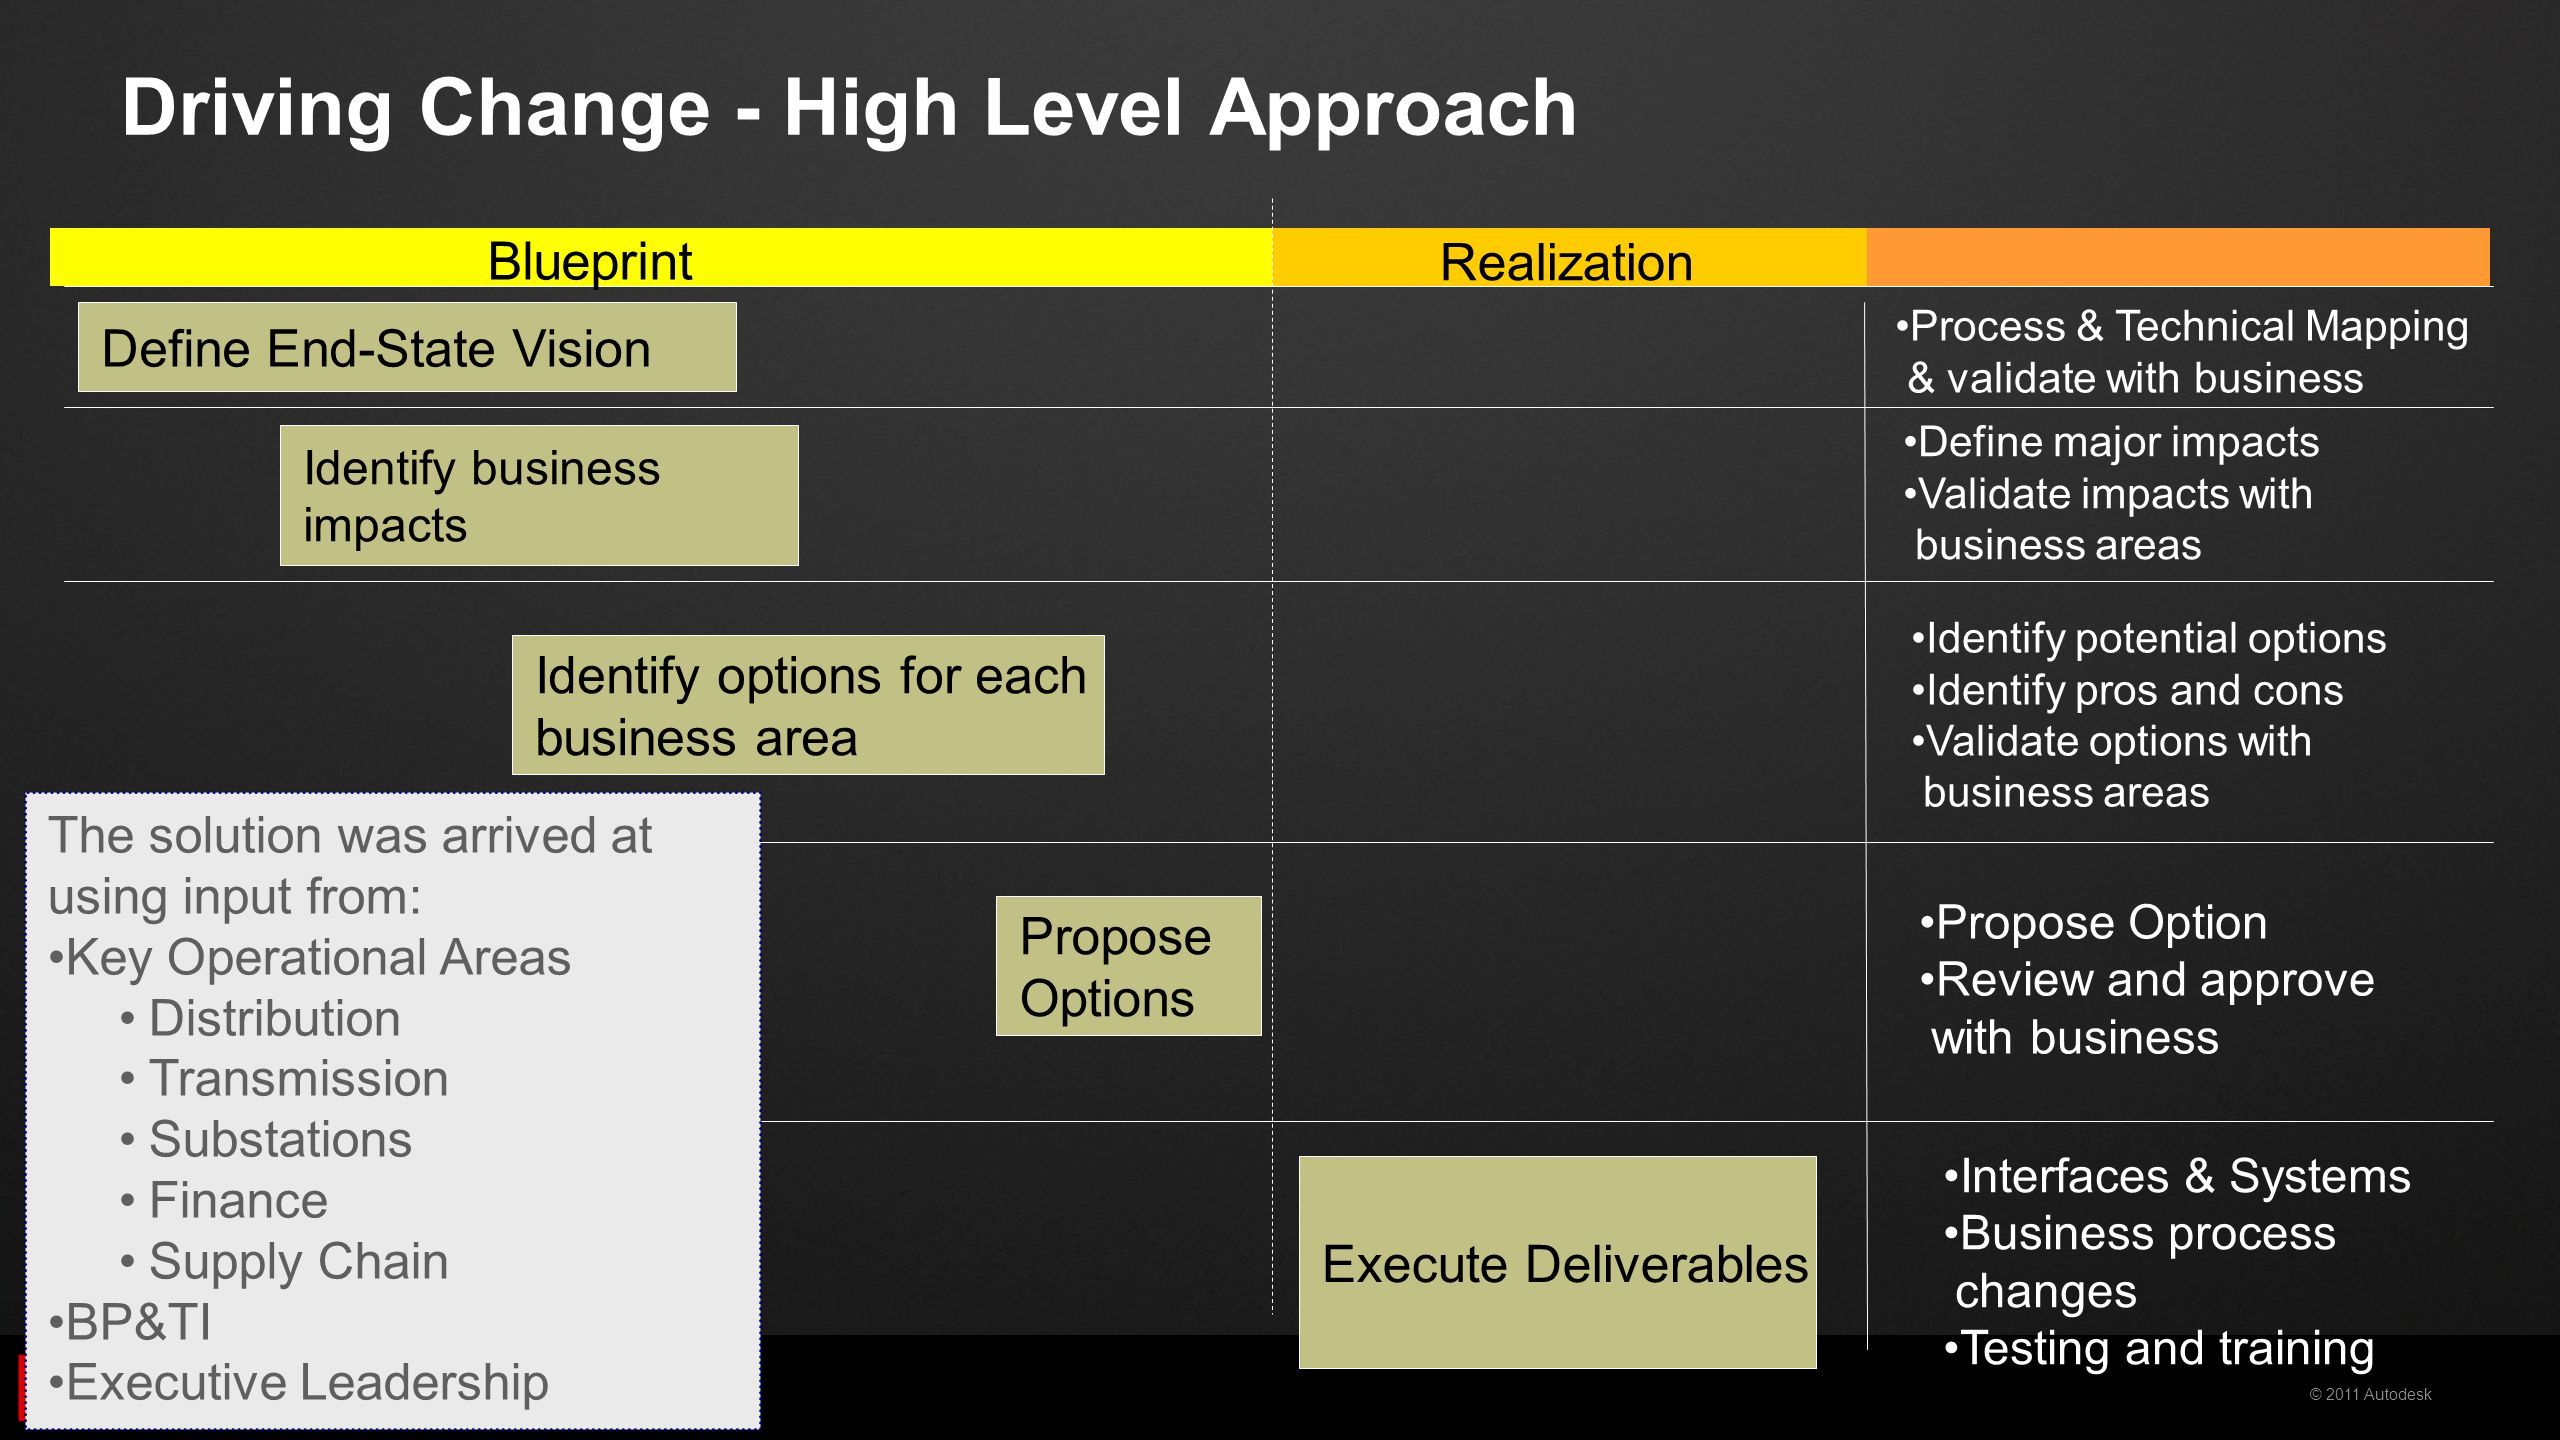 Autodesk utility design aud effective change management at 13 driving change high level approach blueprint realization process malvernweather Choice Image